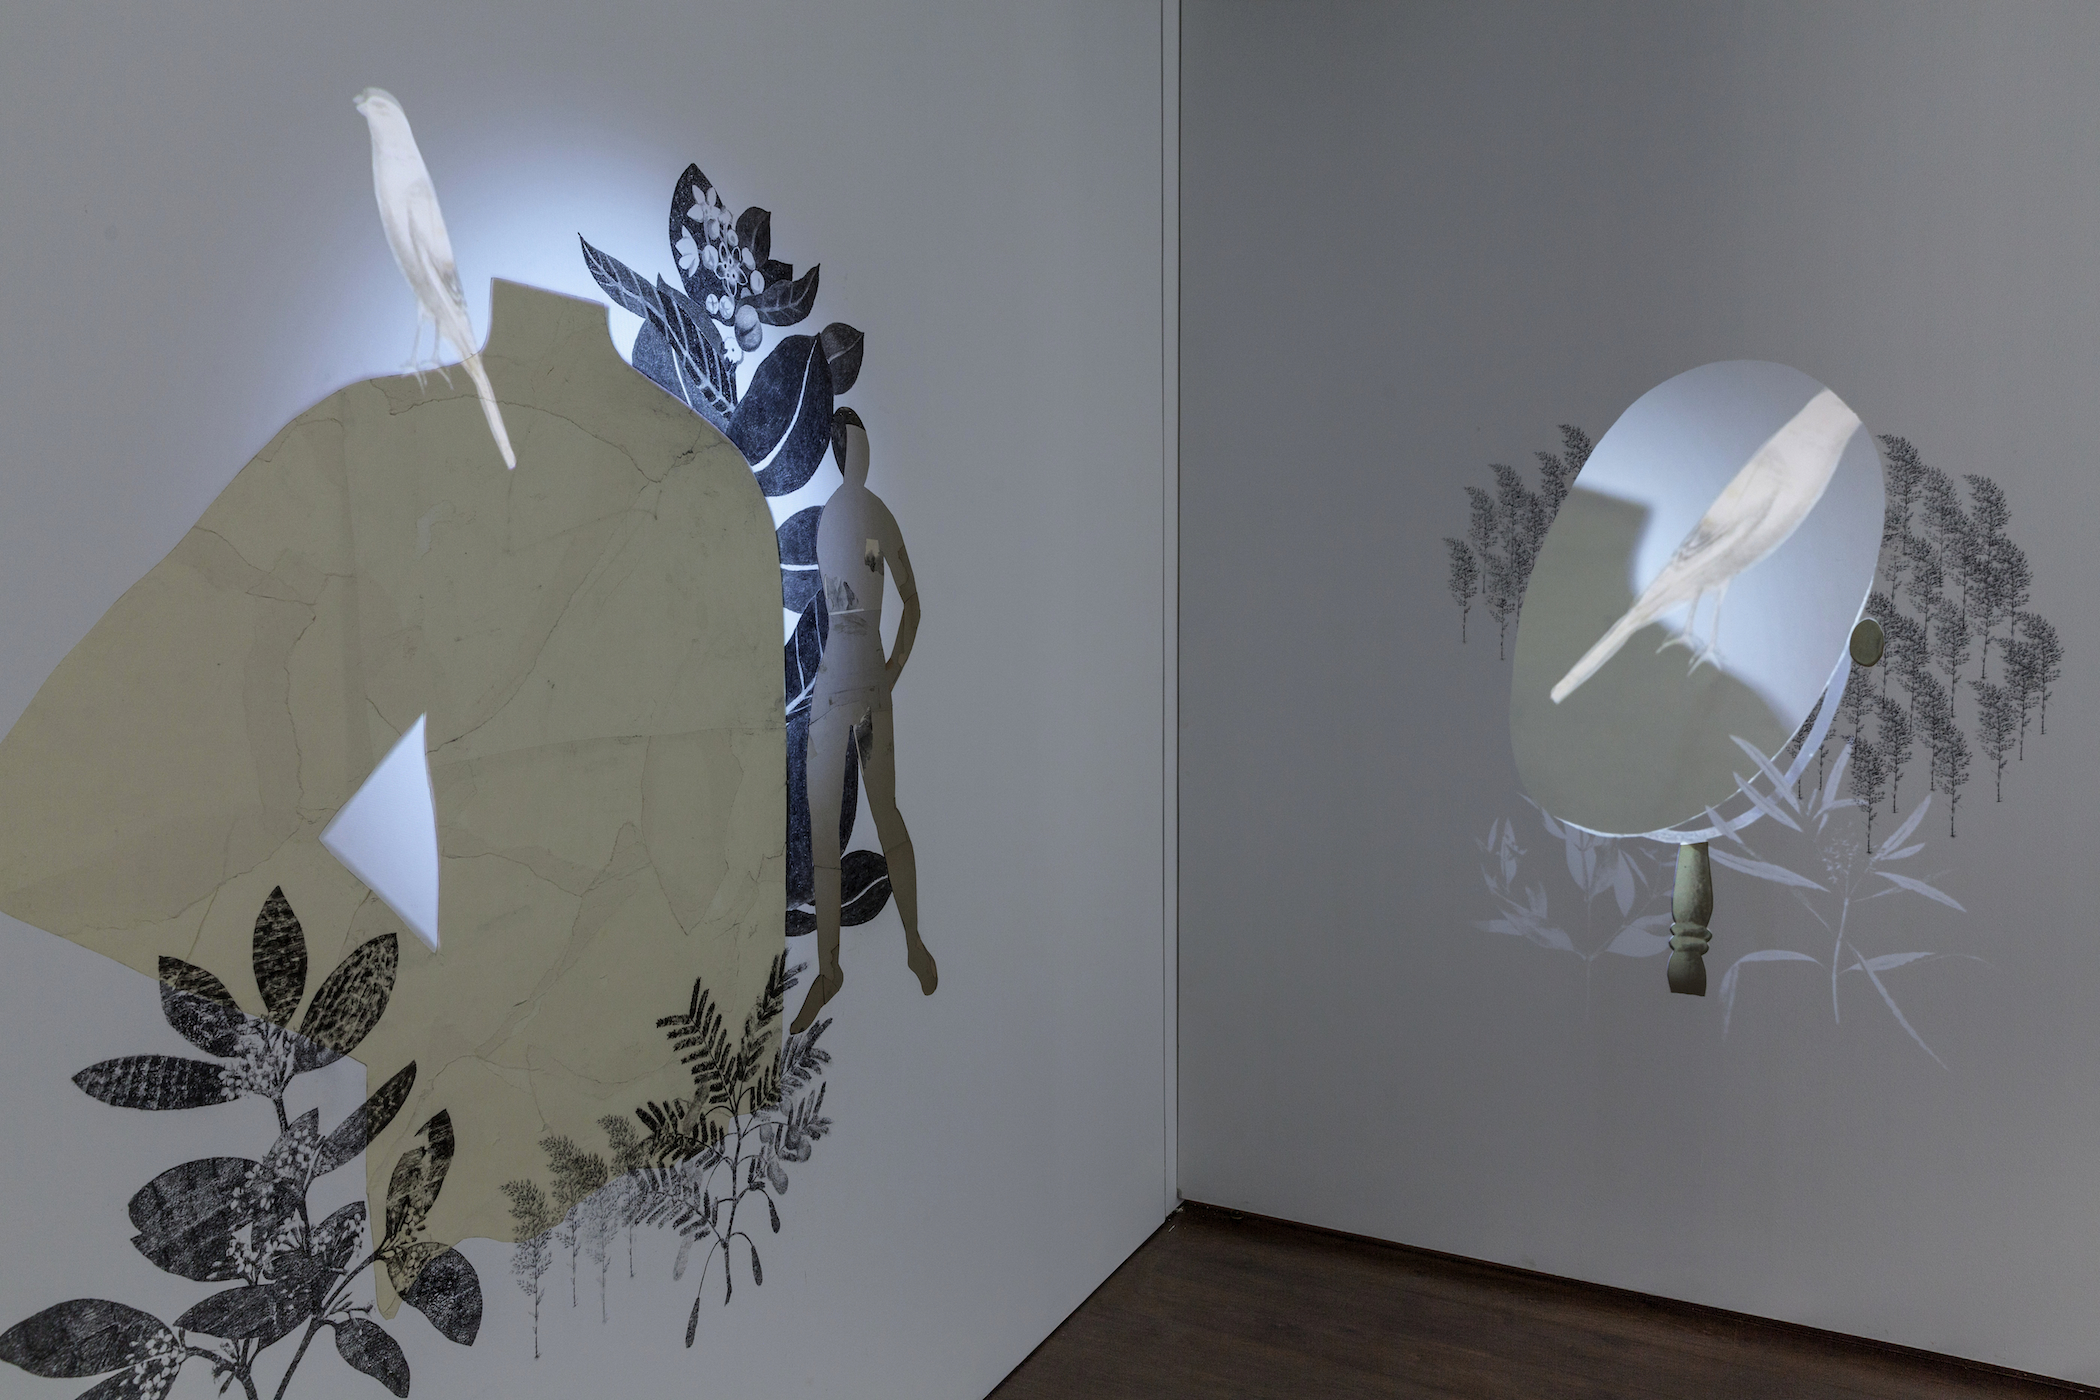 Chimera,  Installation View, We Must Risk Delight: 20 Artists from Los Angeles, curated by Elizabeta Betinski, La Biennale di Venezia, Biennale Arte 2015, Magazzino del Sale No. 3, May 9 - Nov 22, 2015. Charcoal, ink, xerox transfer, collage and projected animation on wall. Sound by Steve Roden. Post-Production Beau Leduc.